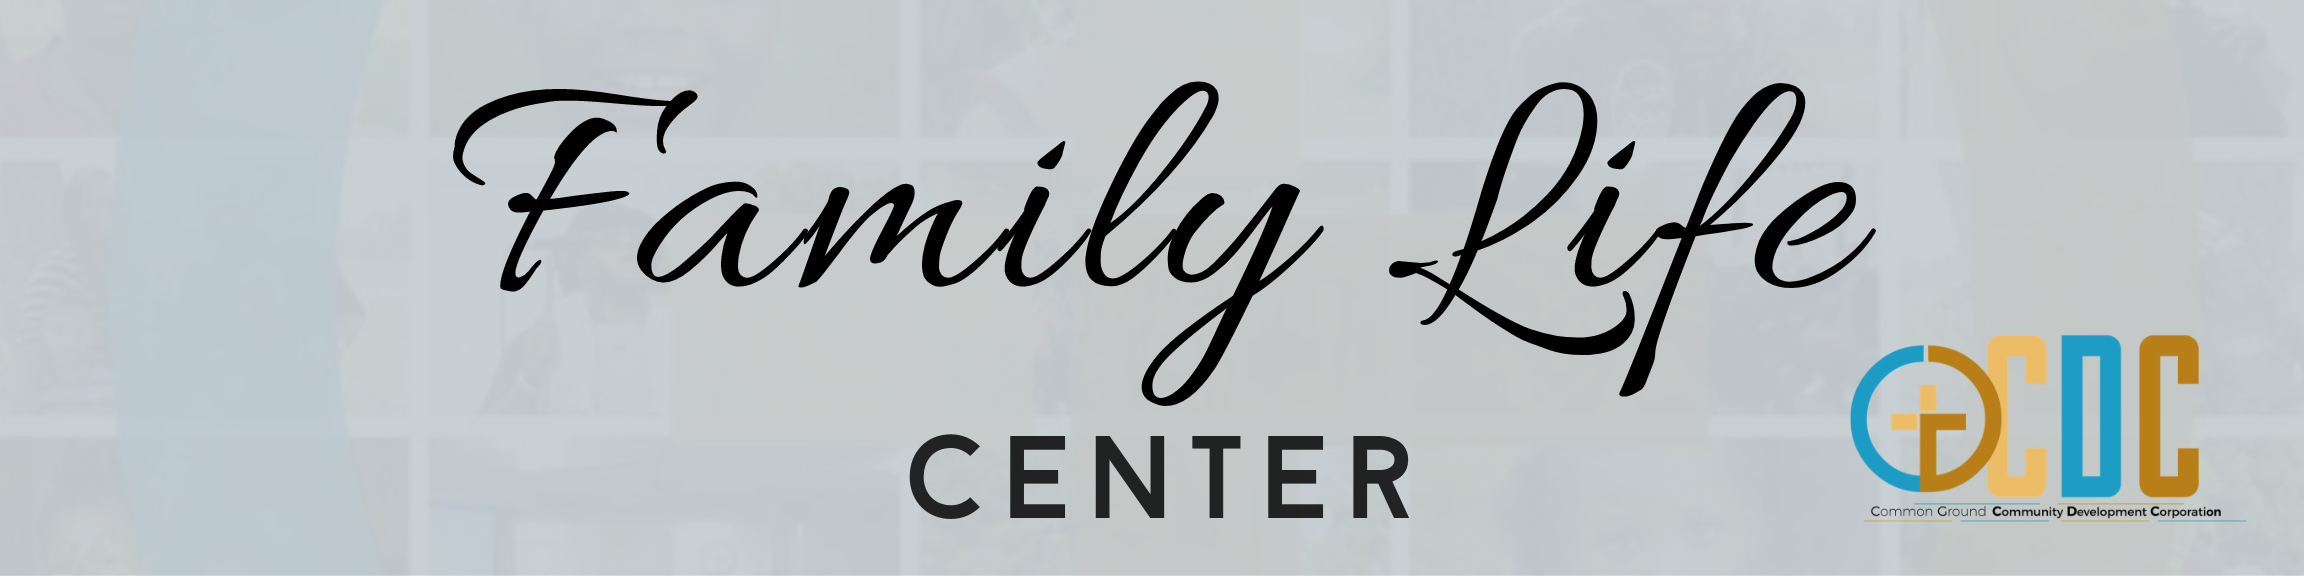 Family Life Center Sign.png